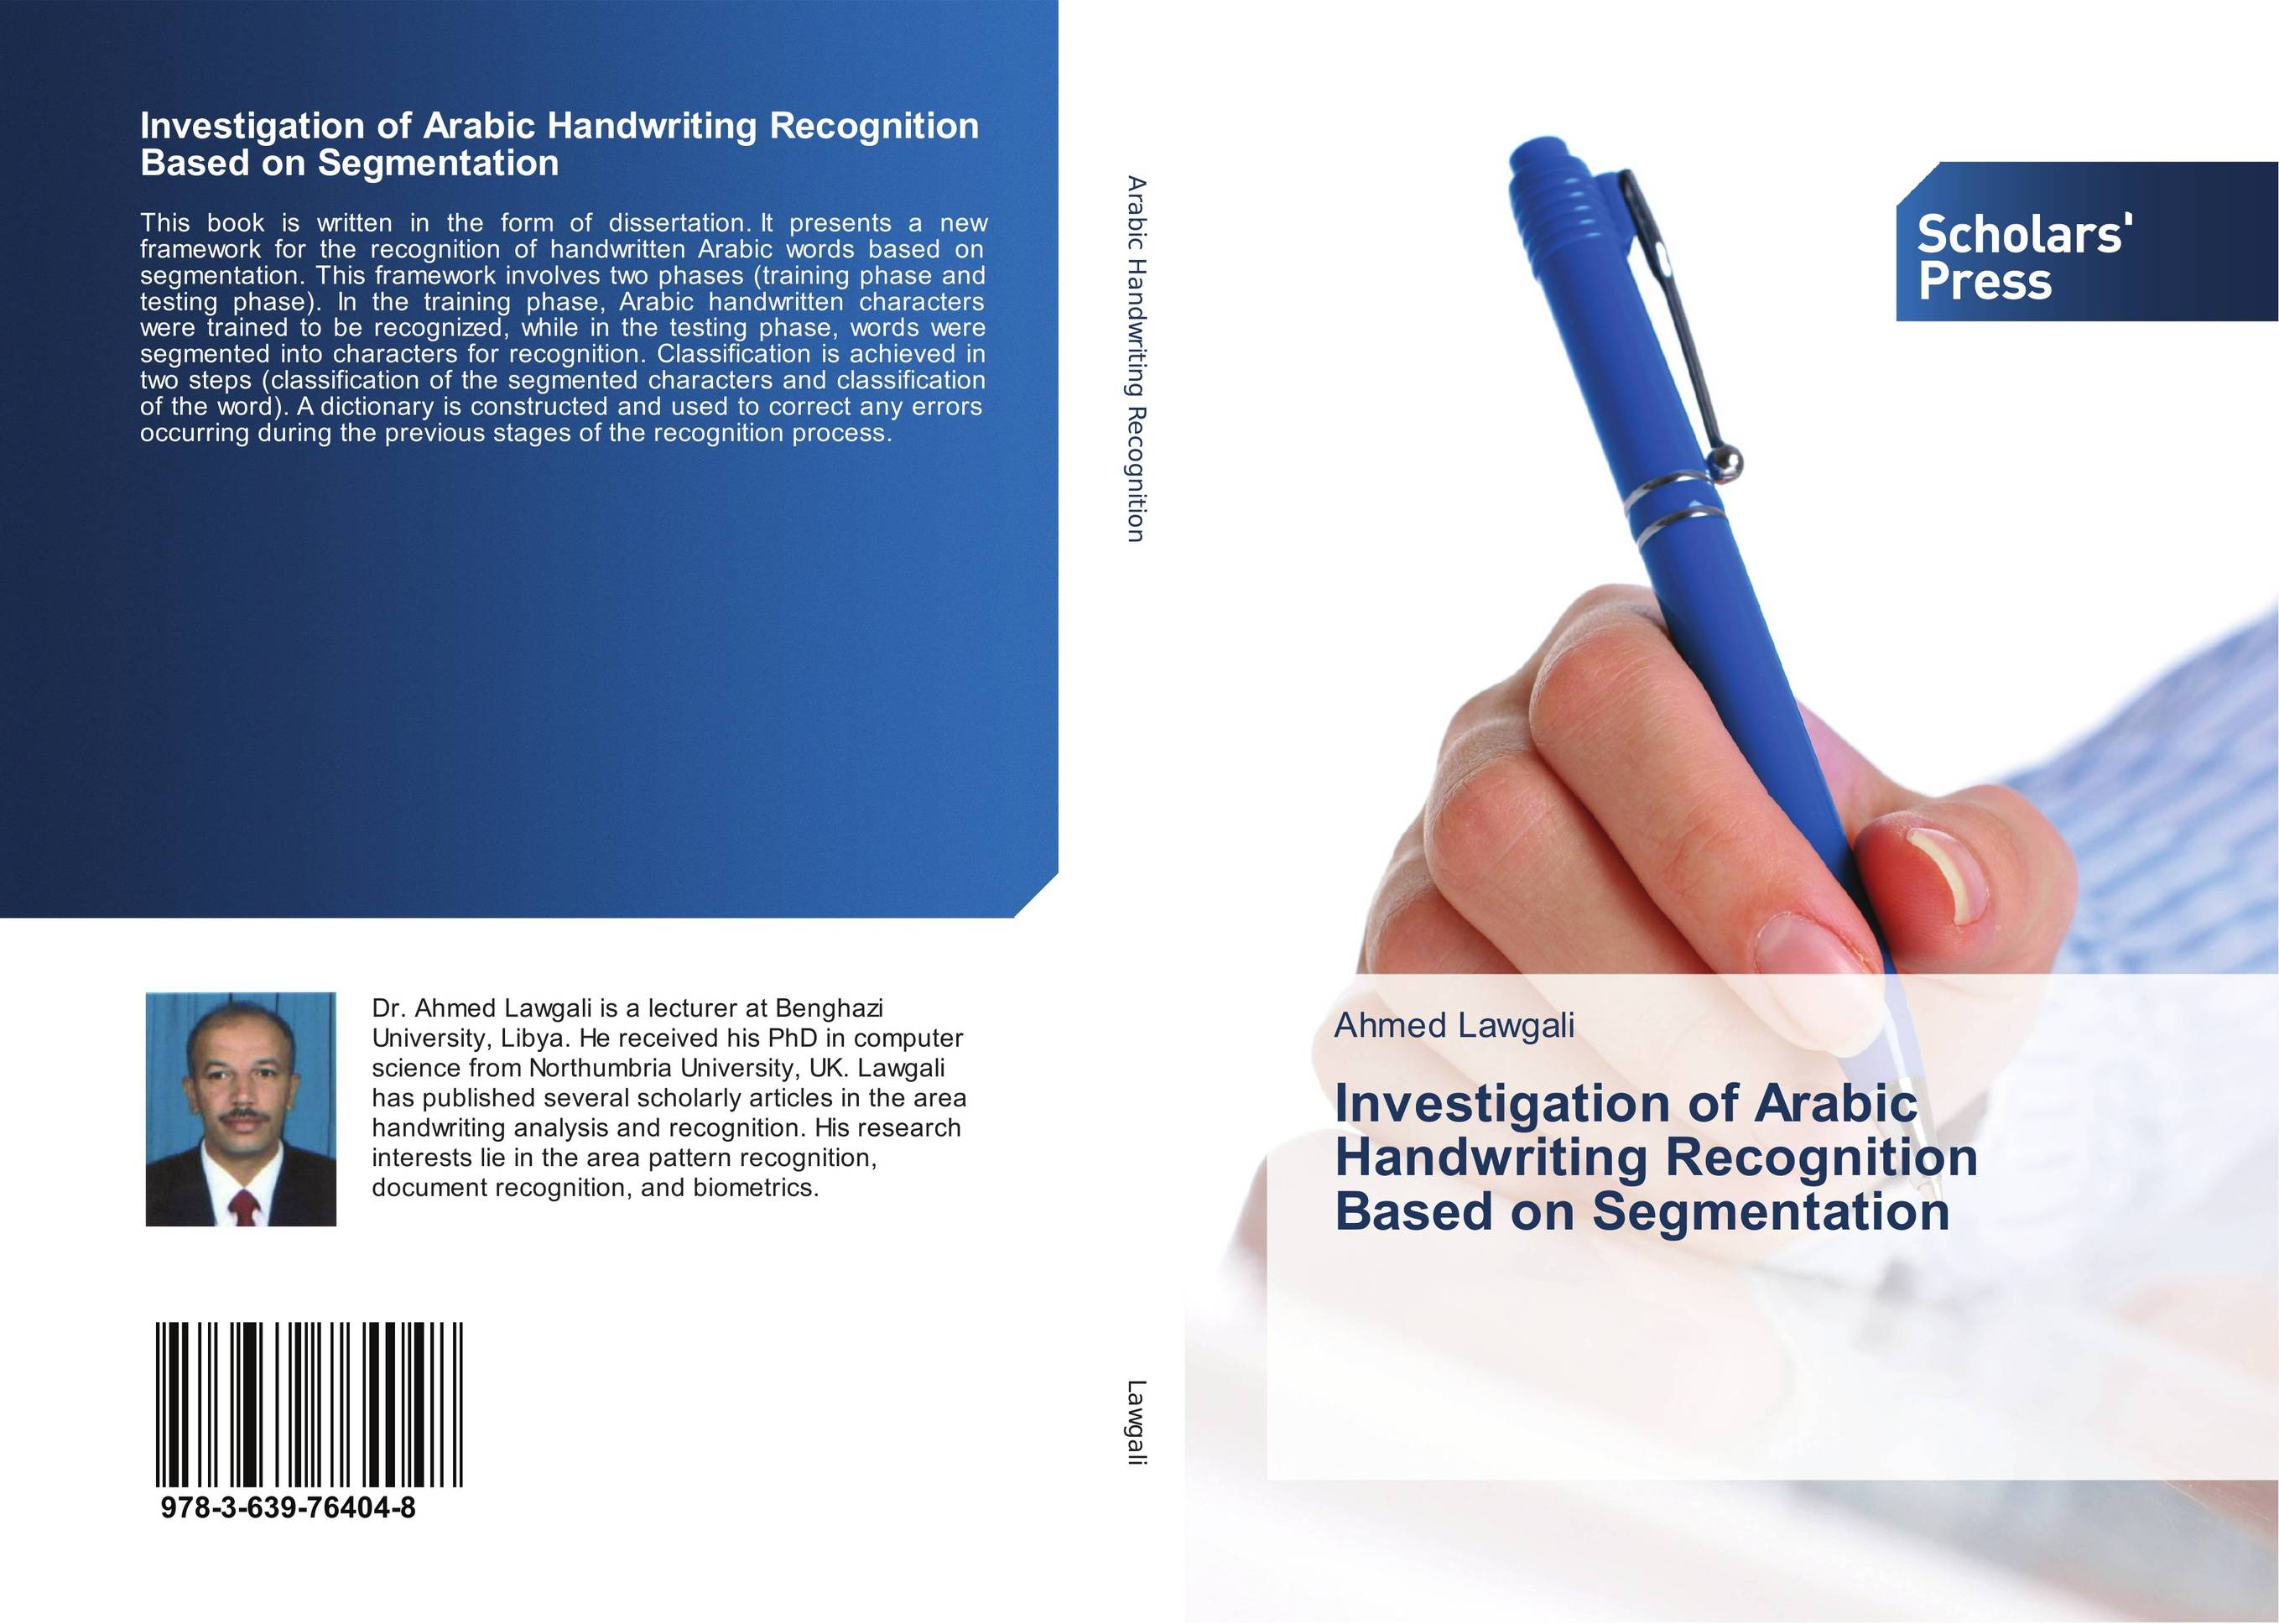 Investigation of Arabic Handwriting Recognition Based on Segmentation